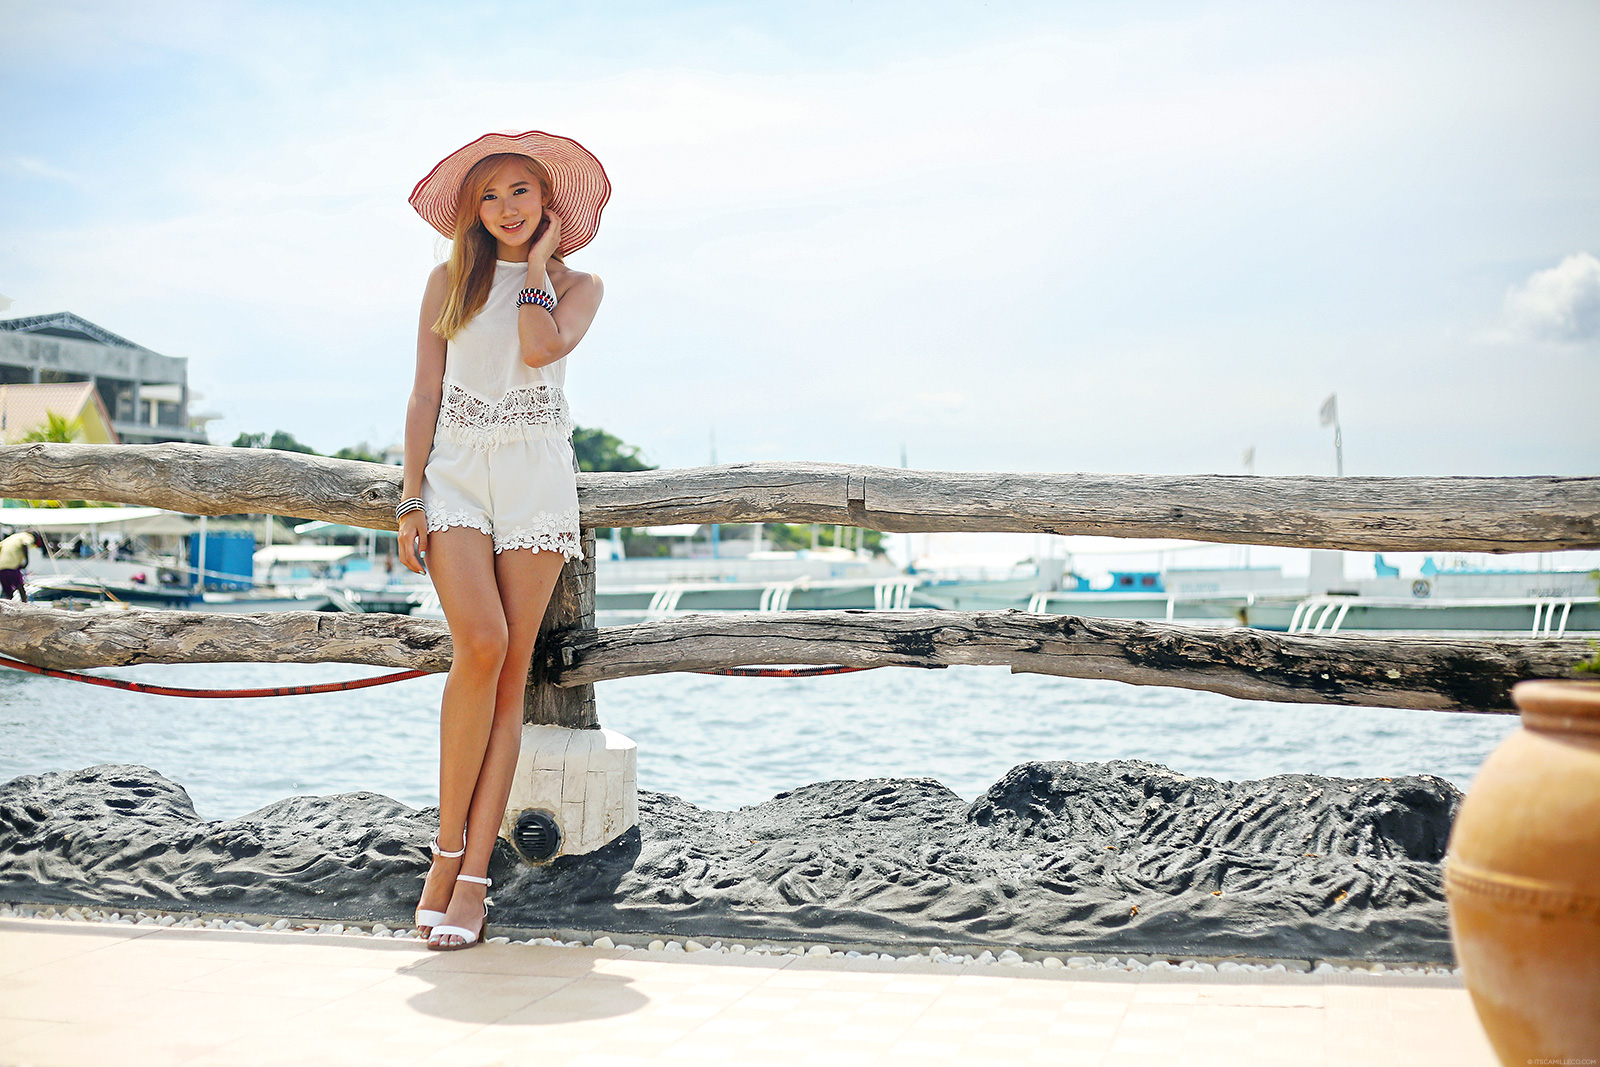 Beach Fashion Featuring Zara, Stradivarius | itscamilleco.com